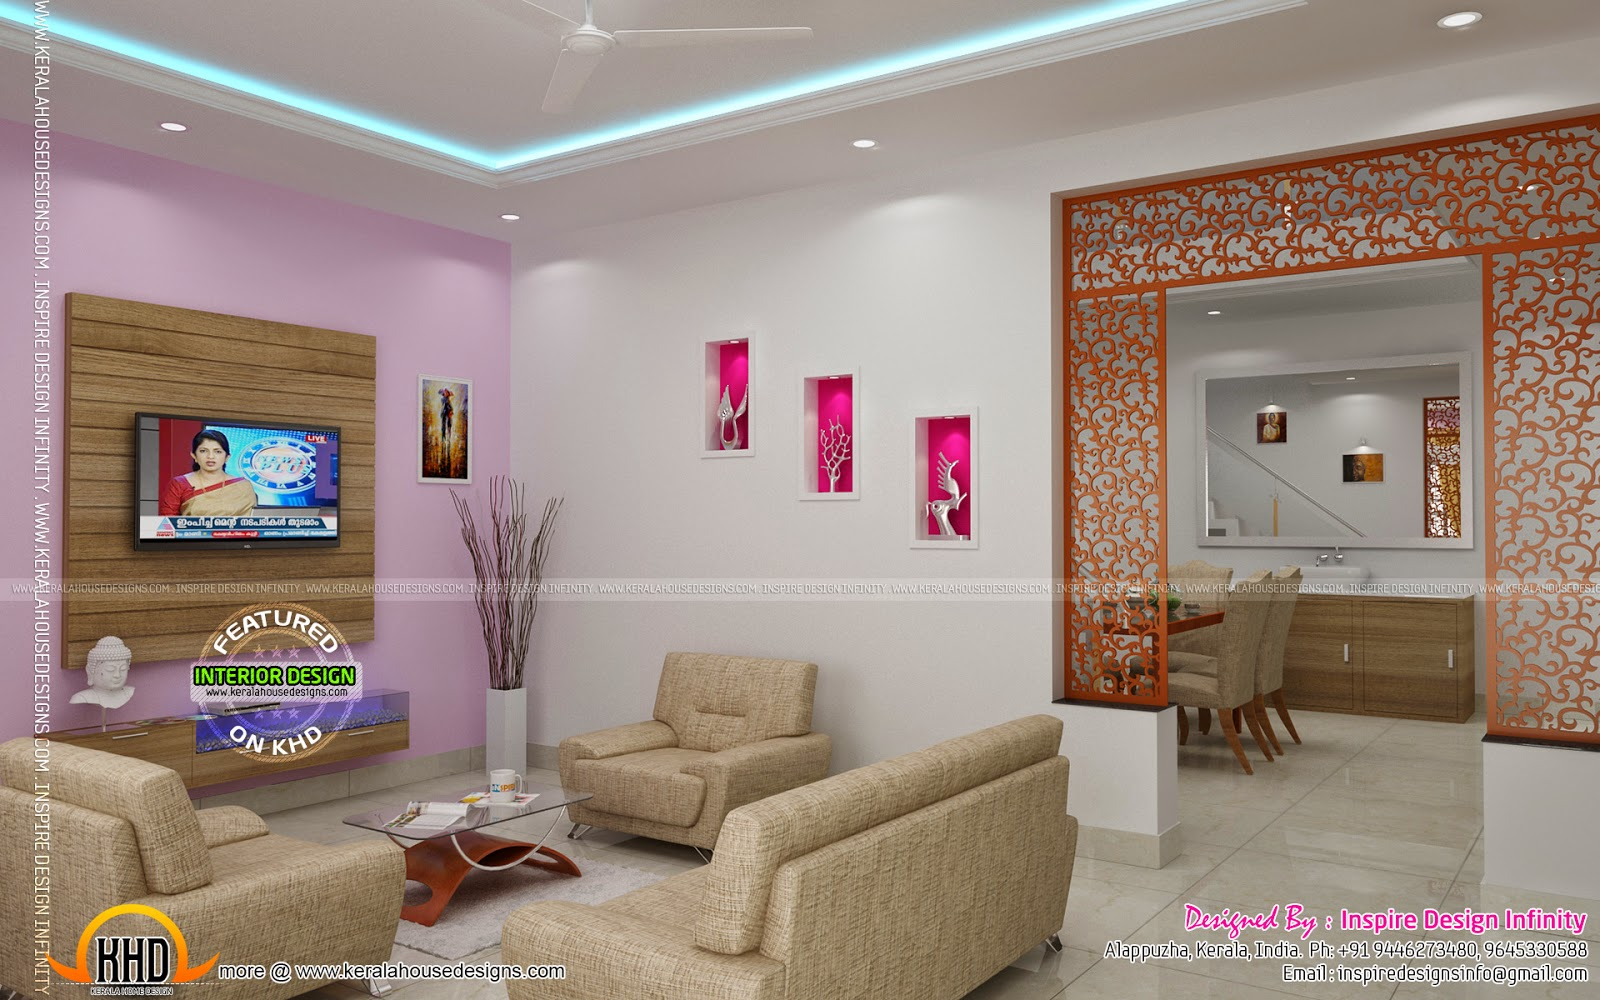 Interior designs by inspire design infinity kerala home for Kerala homes interior designs